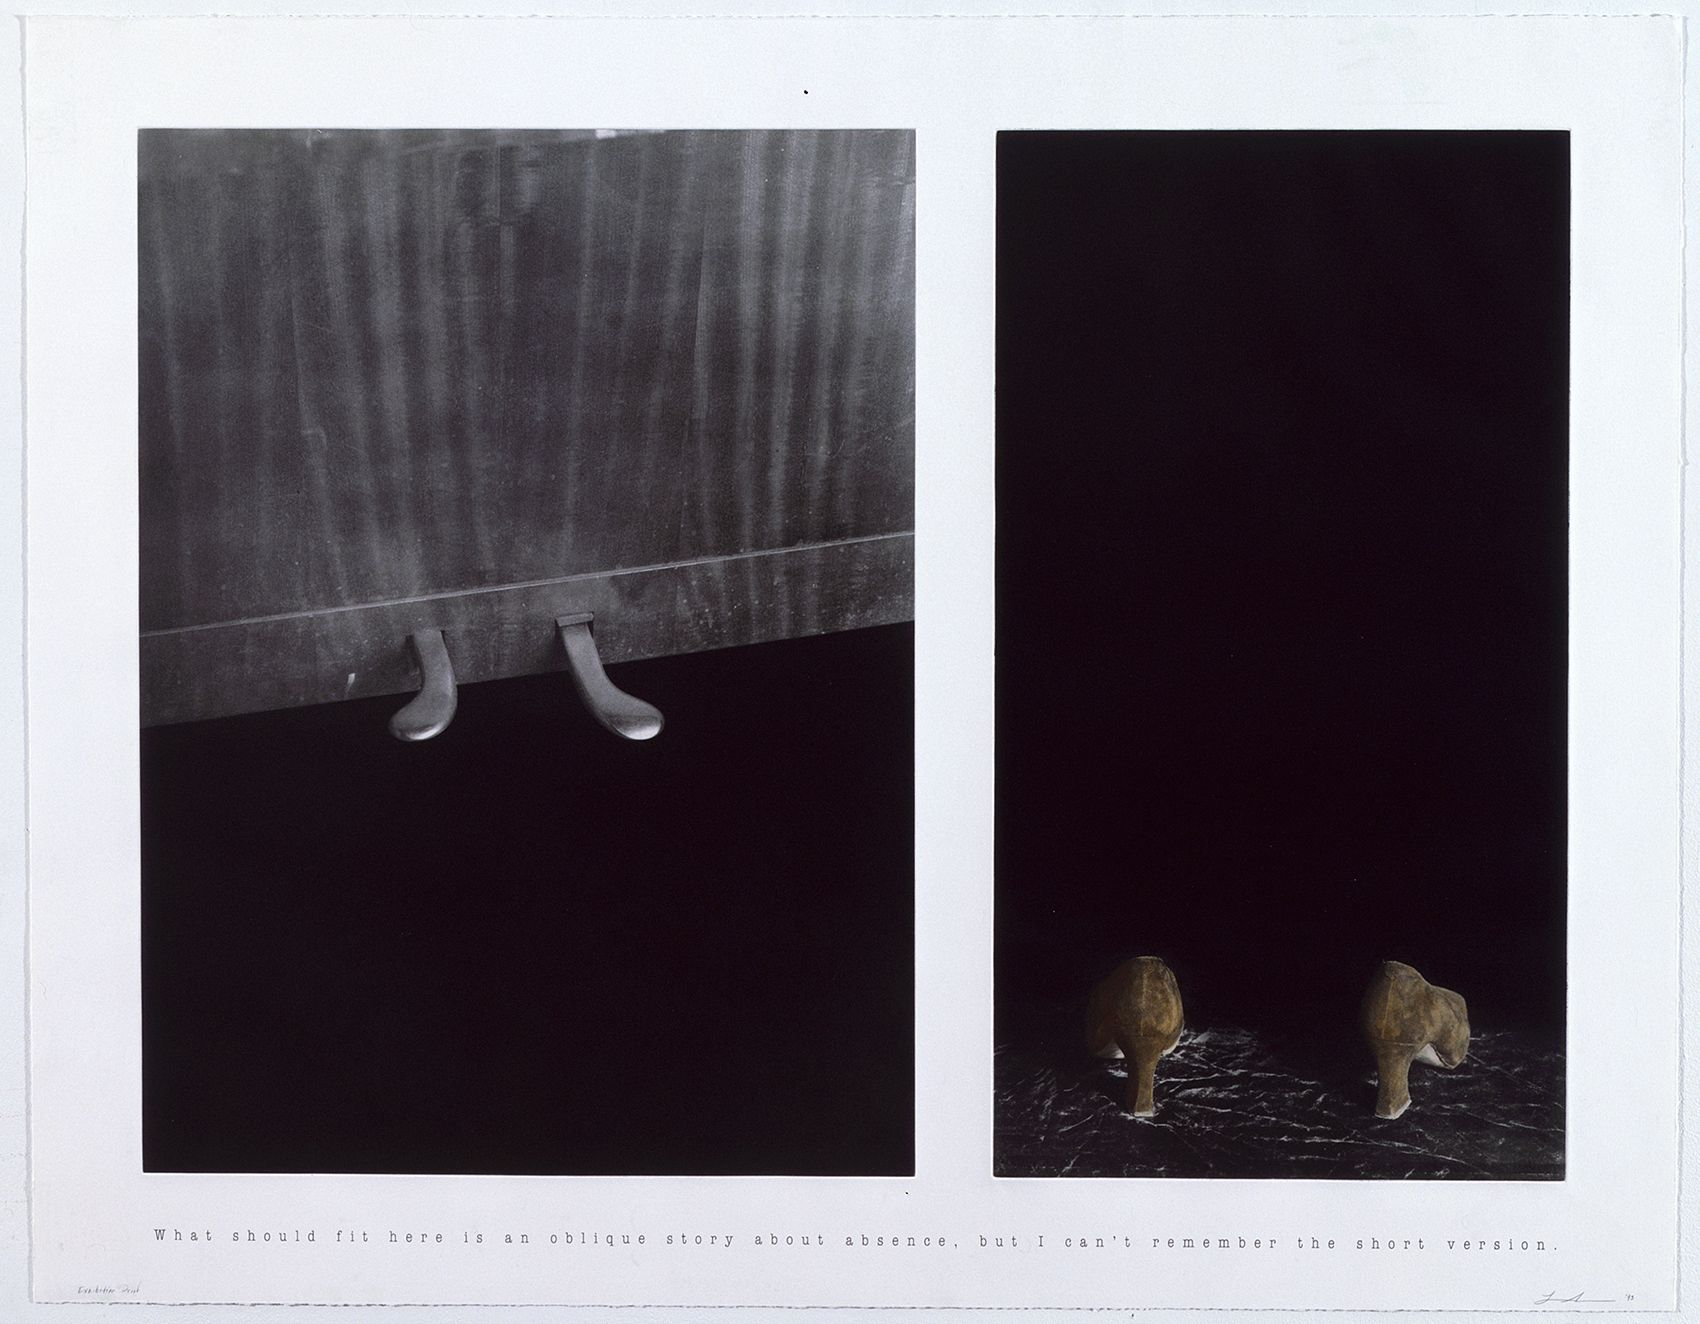 Untitled (What Should Fit Here Is an Oblique Story About Absence), 1993